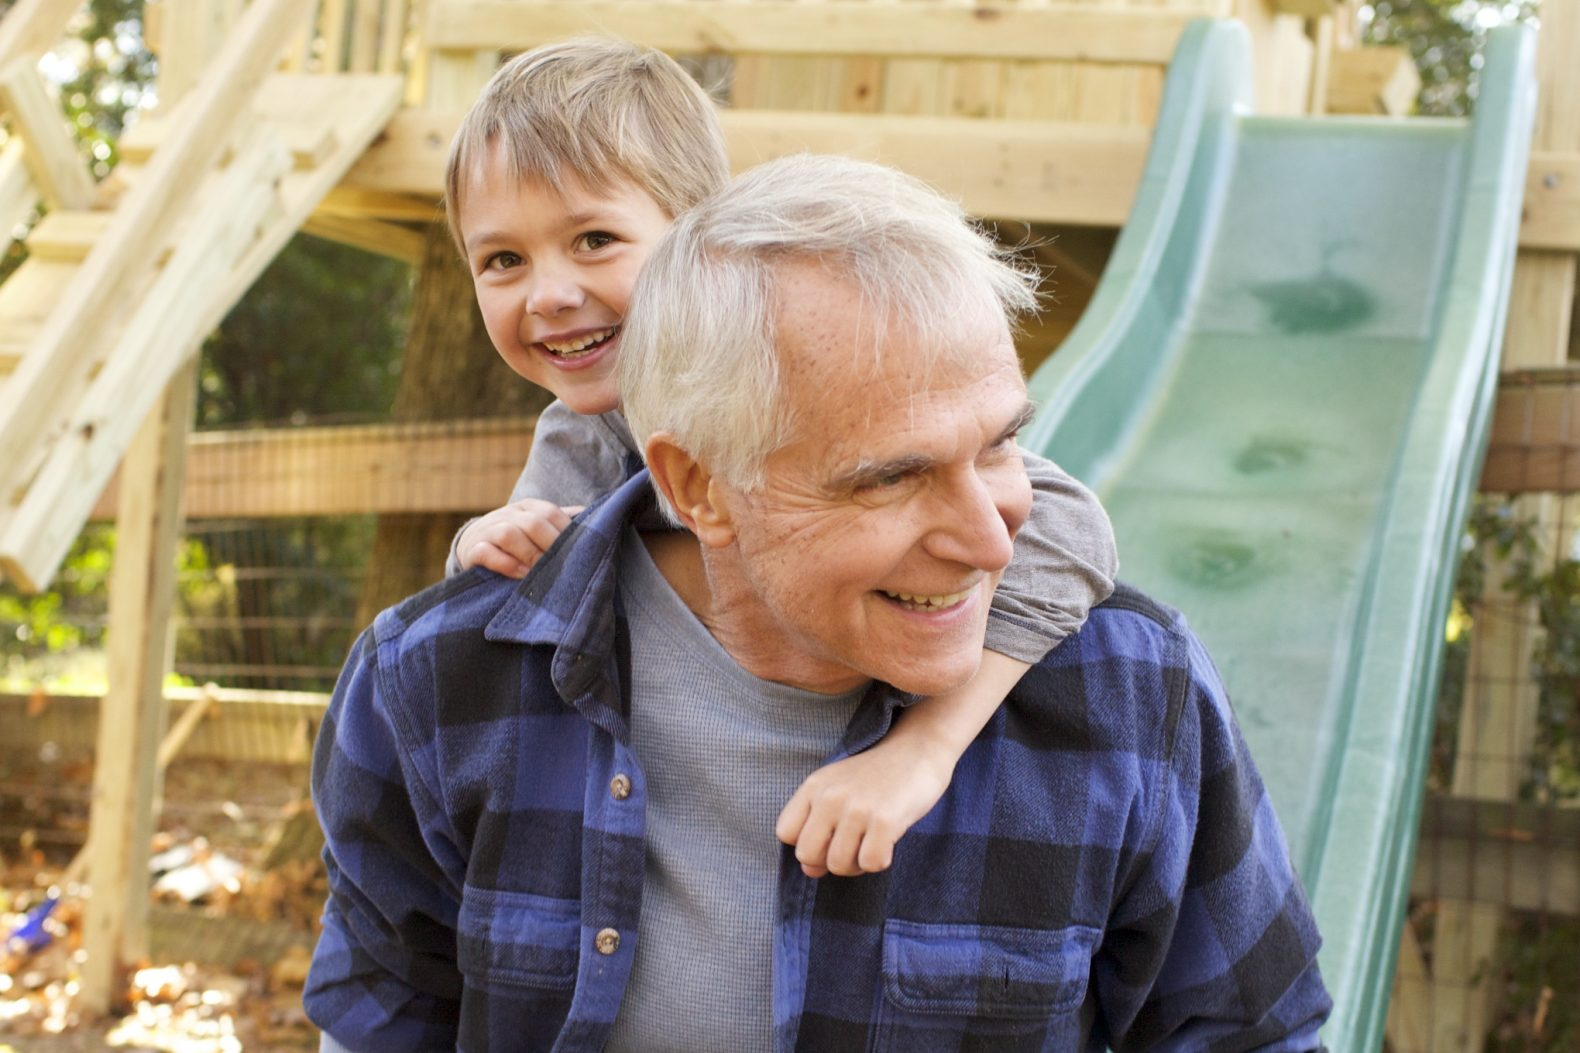 A grandpa in fall attire with his toddler grandson on his back in front of a swingset